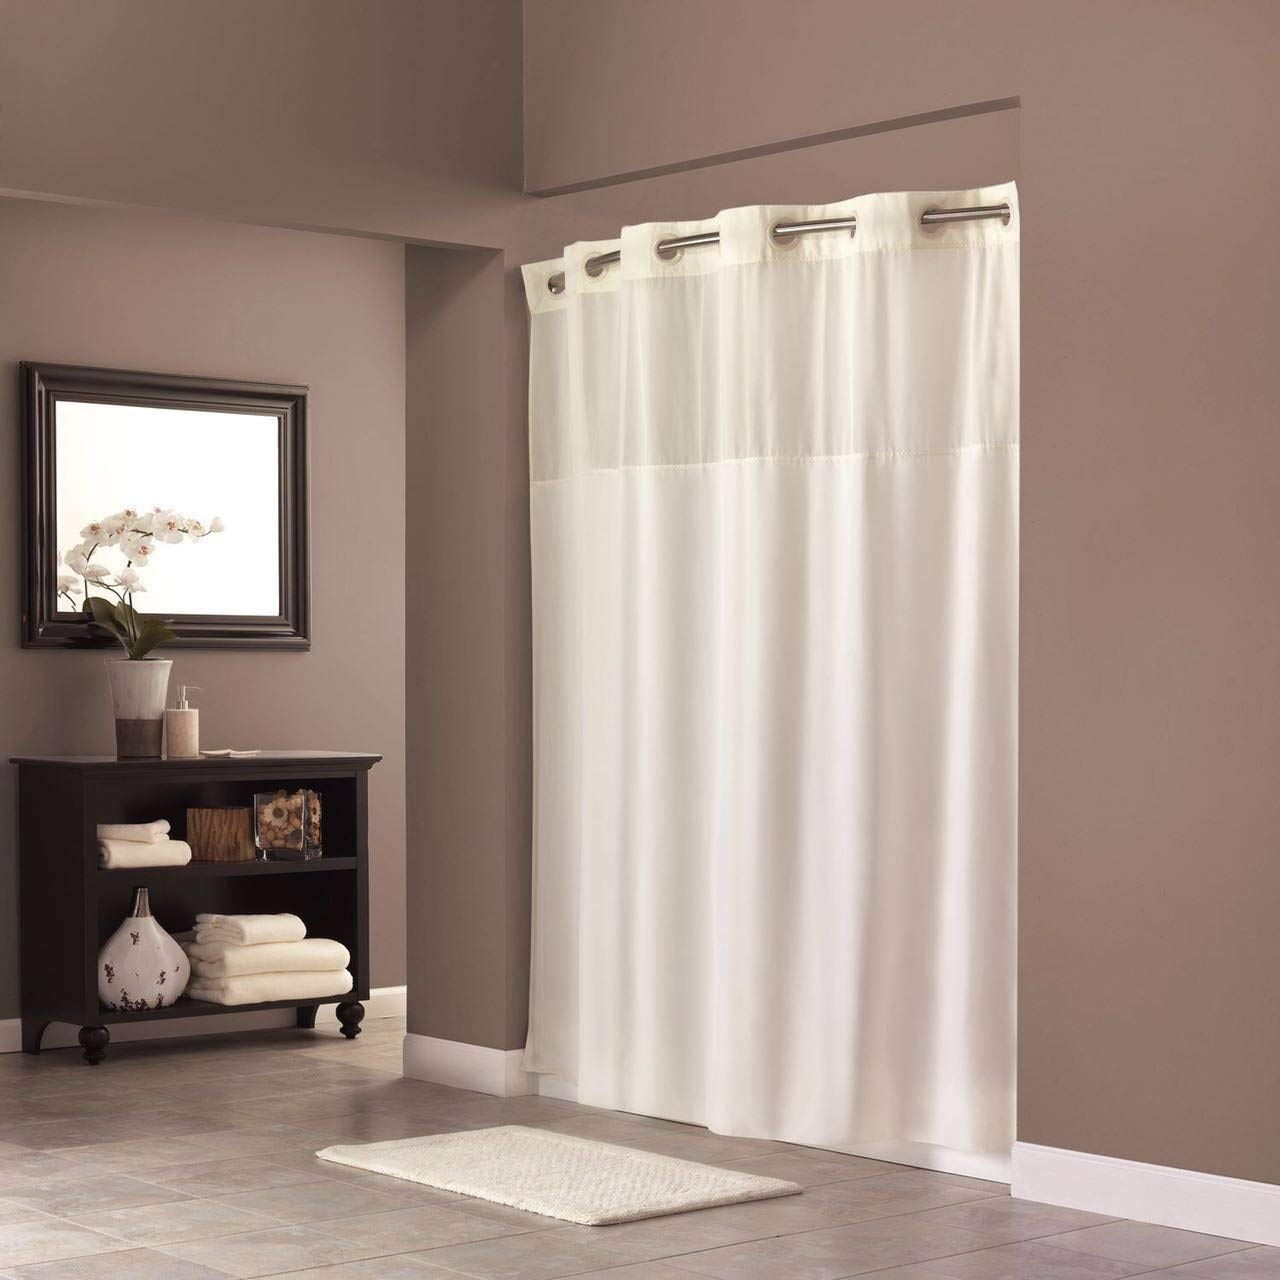 mini deer hookless shower curtain with magnet 70 8 x 74 inch polyester bath curtain with light filtering mesh